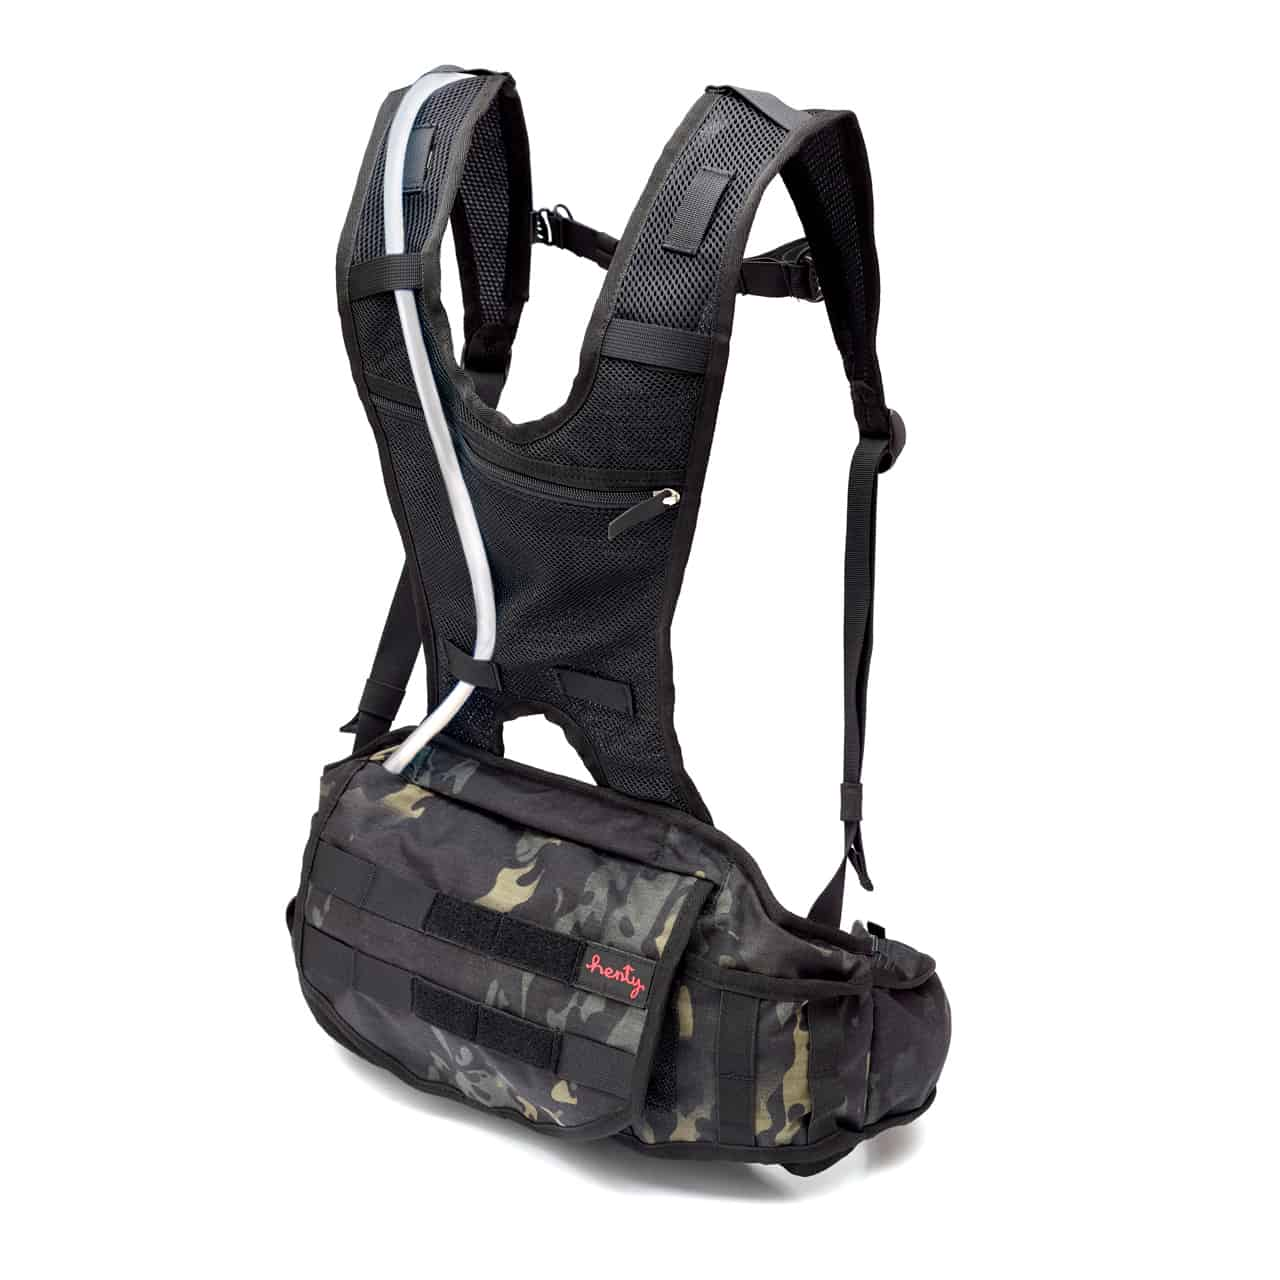 Suitable for Webbing on The Backpack up to 25MM Amlrt Backpack Chest Strap Dark Blue Nylon